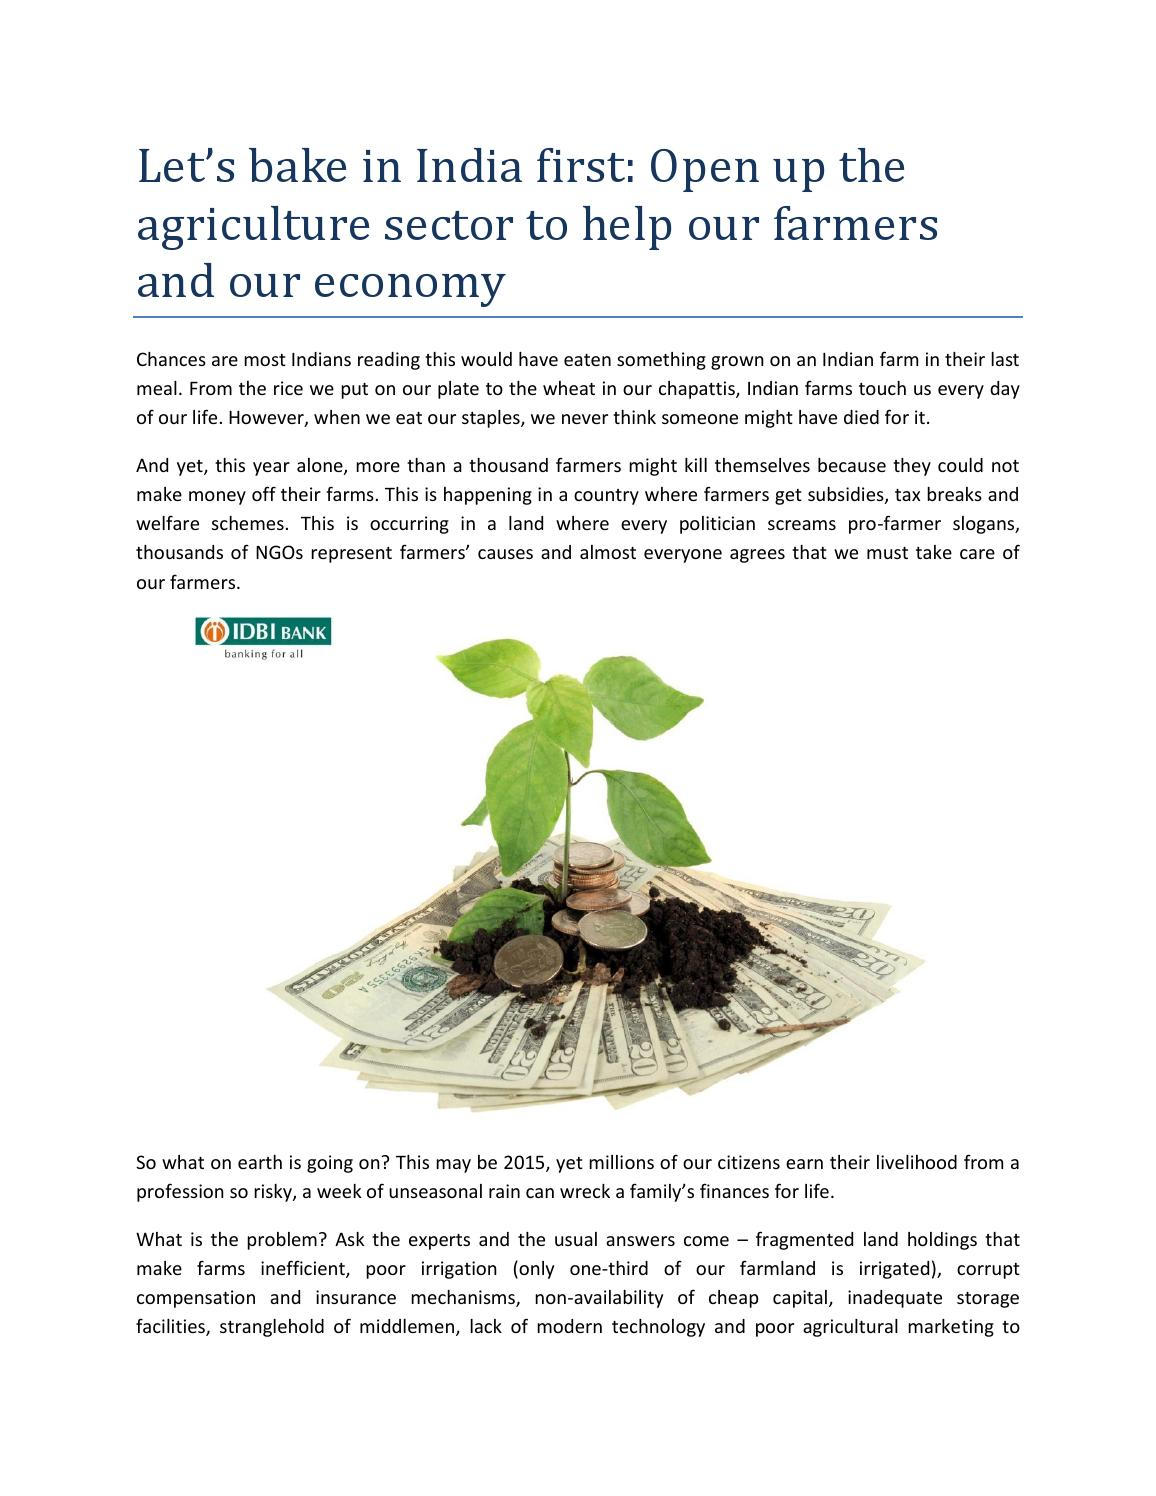 Let's bake in india first open up the agriculture sector to help our